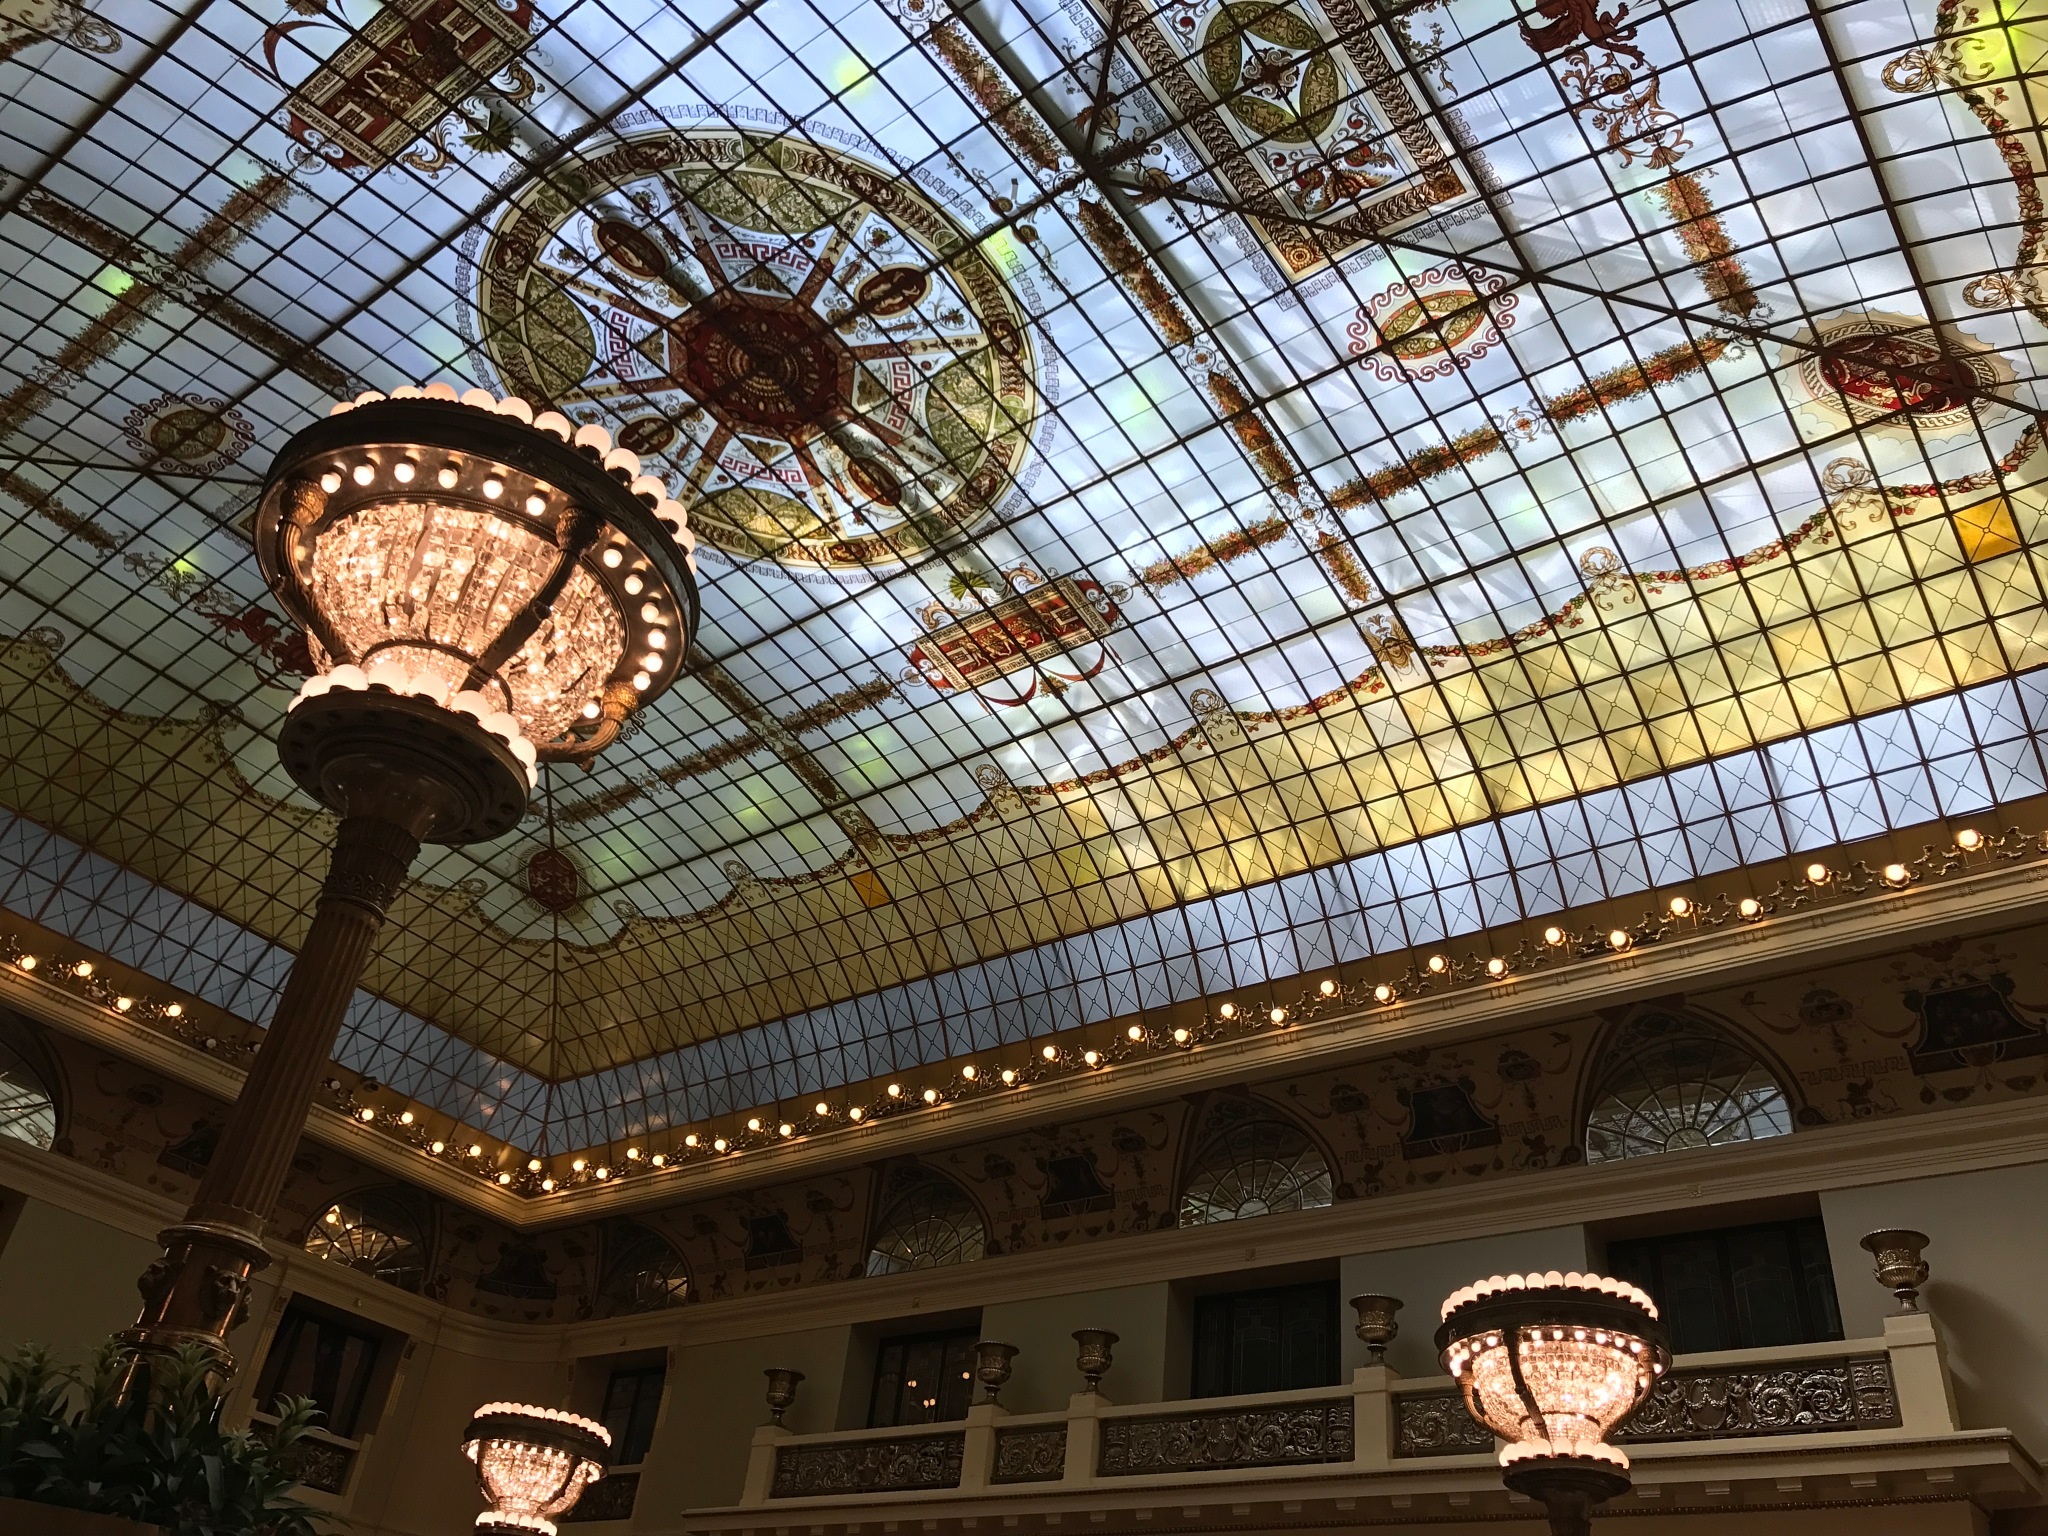 Stained glass ceiling of Metropol Hall by Meggie Knoblock